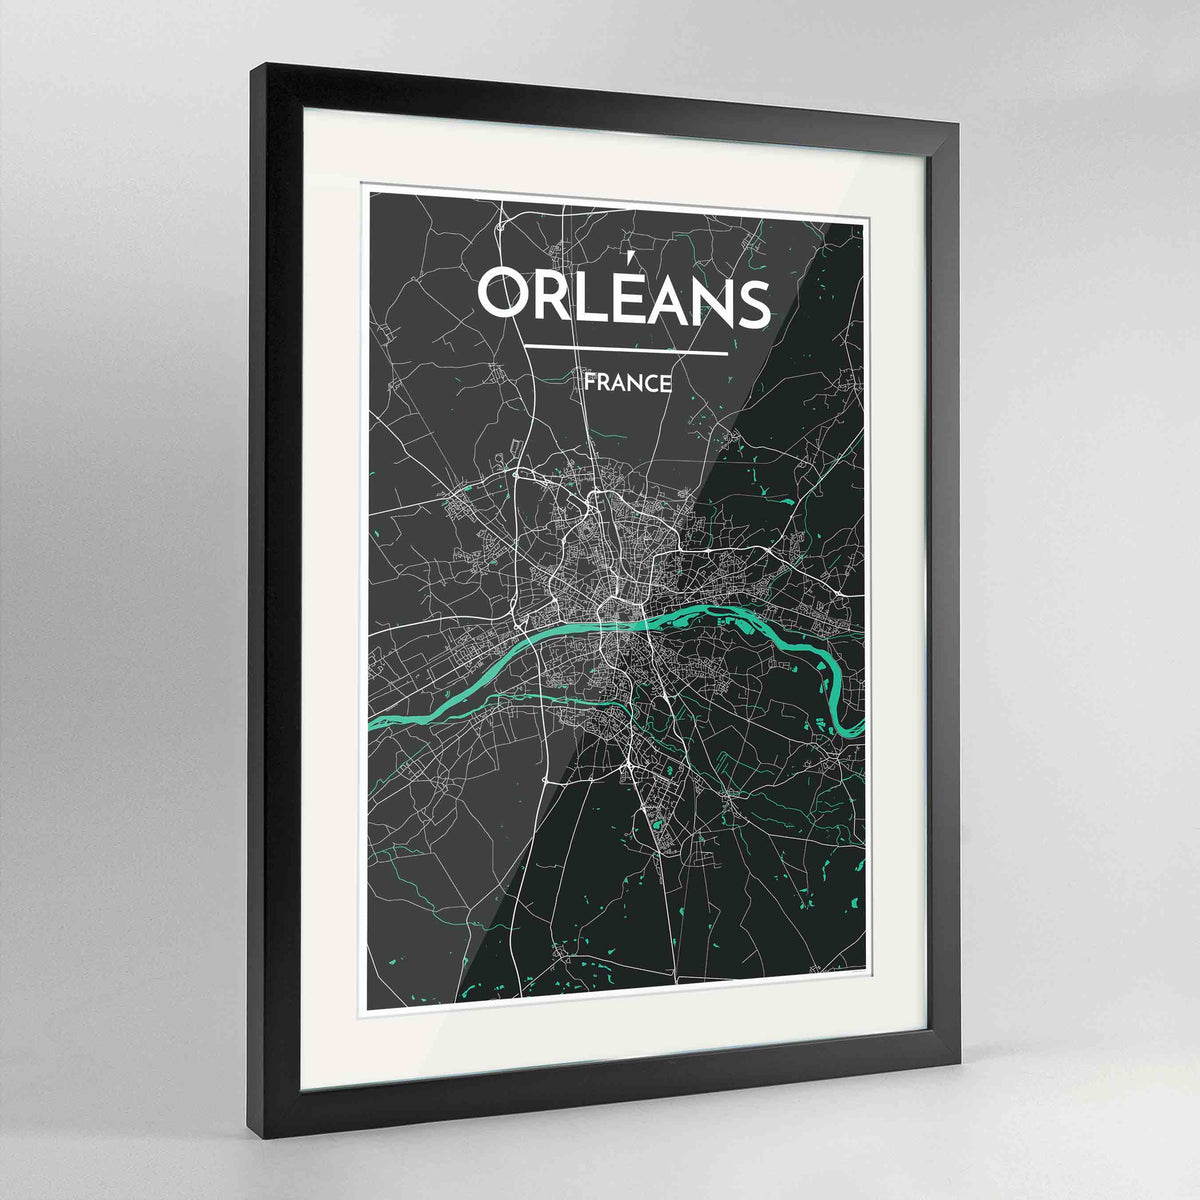 "Framed Orleans Map Art Print 24x36"" Contemporary Black frame Point Two Design Group"